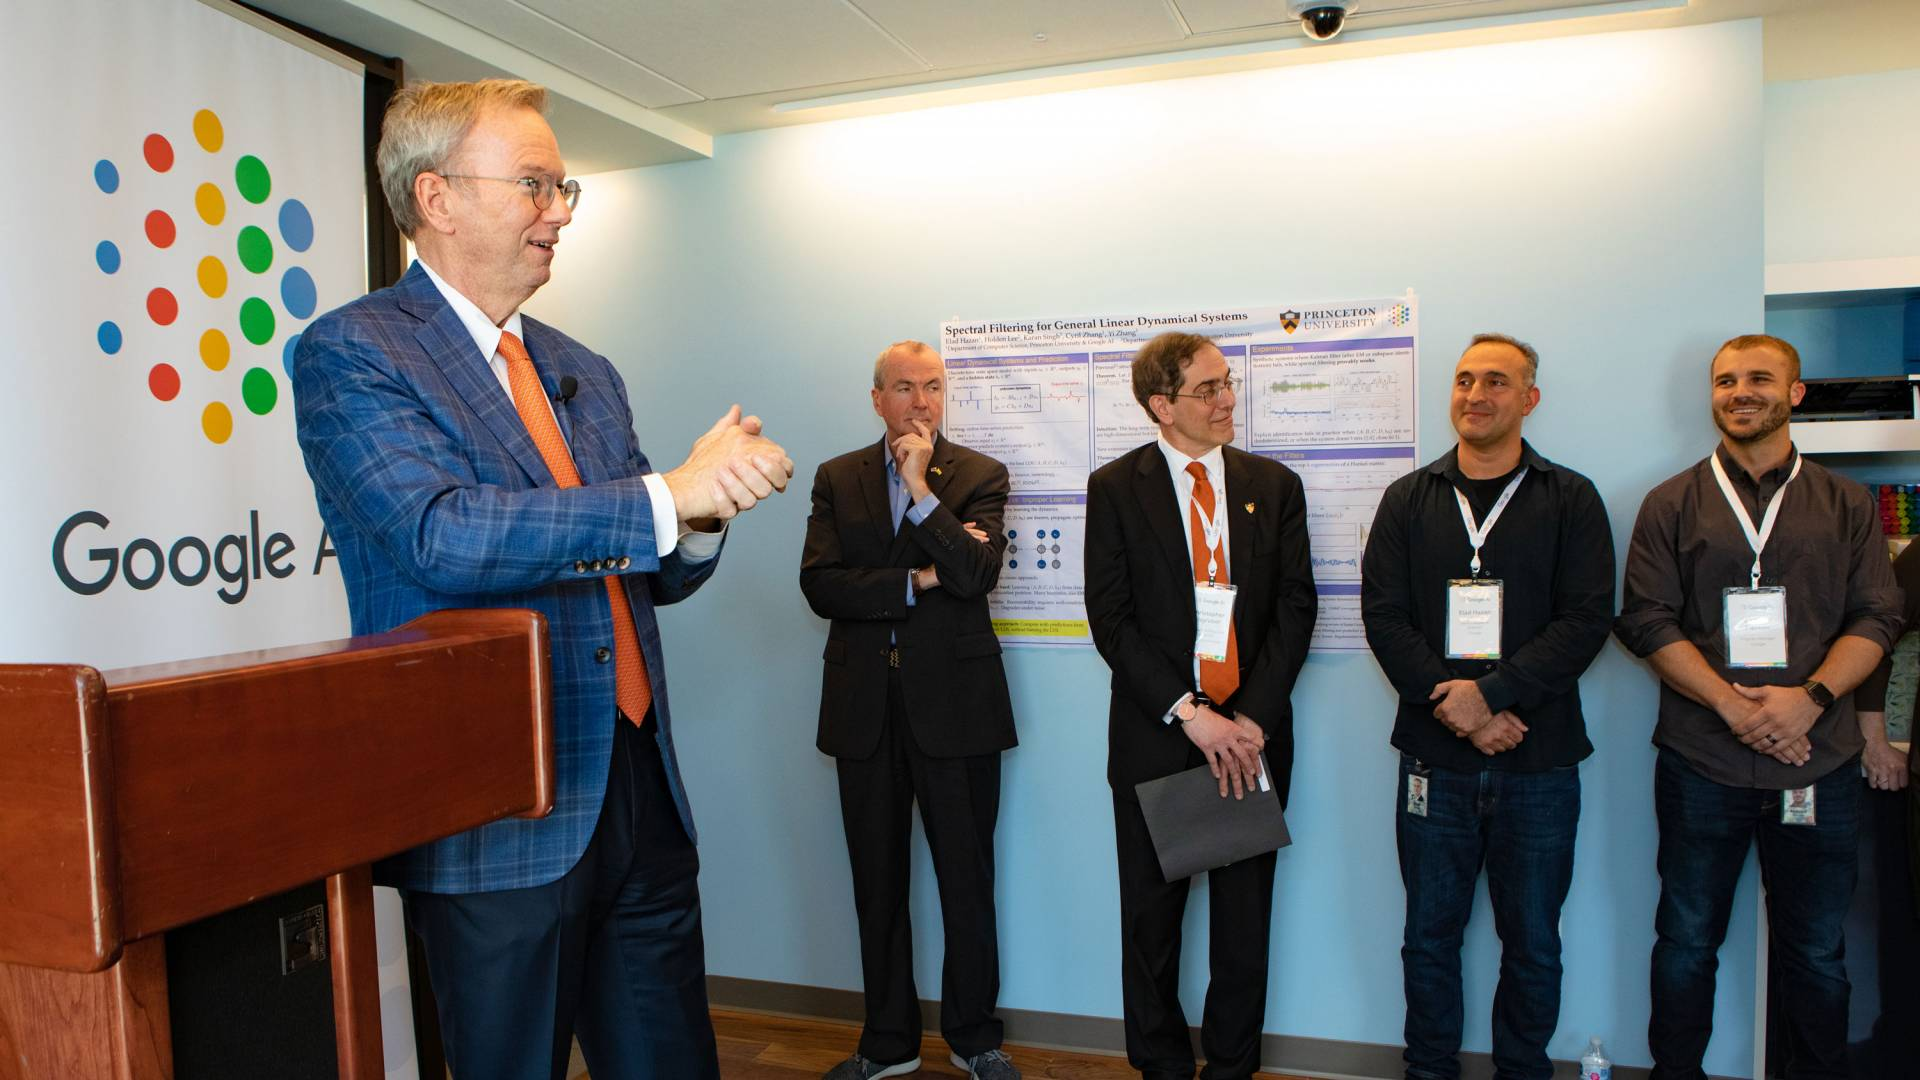 Former Google chairman and executive CEO Eric Schmidt, a Princeton alumnus, speaks at the formal launch of the Google AI Princeton lab on May 2, while New Jersey Gov. Phil Murphy, President Christopher L. Eisgruber, Professor of Computer Science Elad Haza